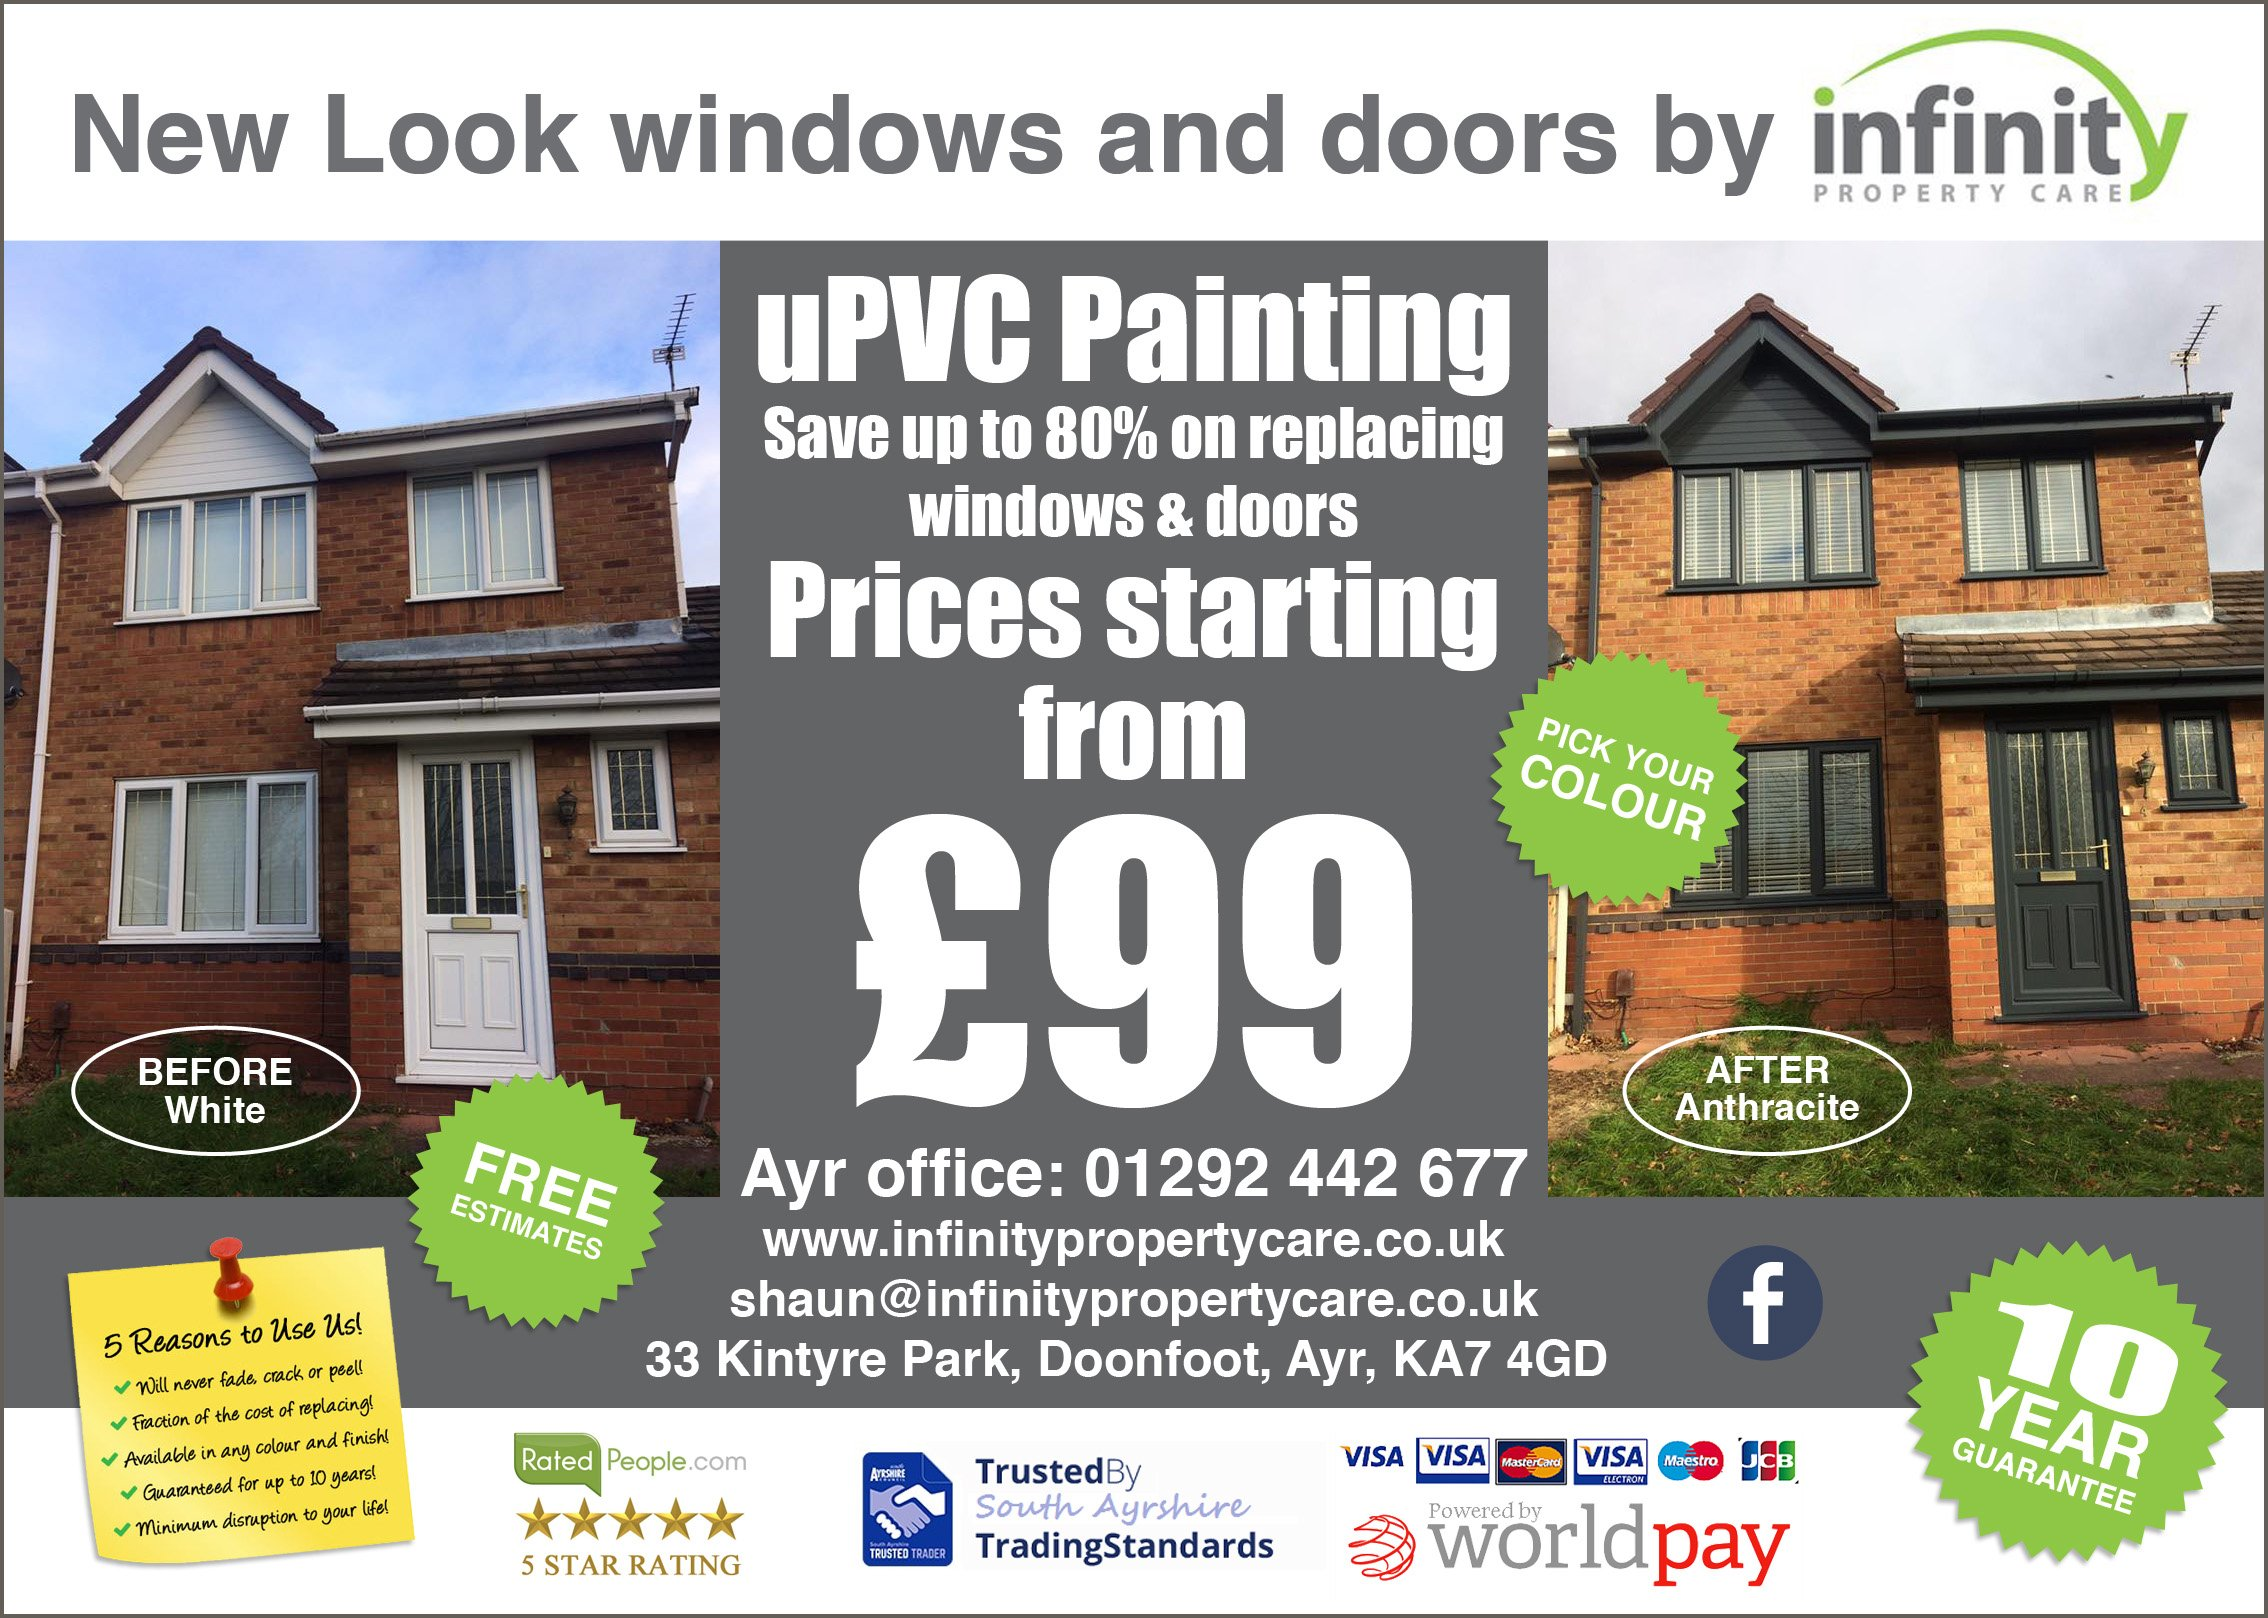 UPVC Spraying - Composite / UPVC / Aluminium